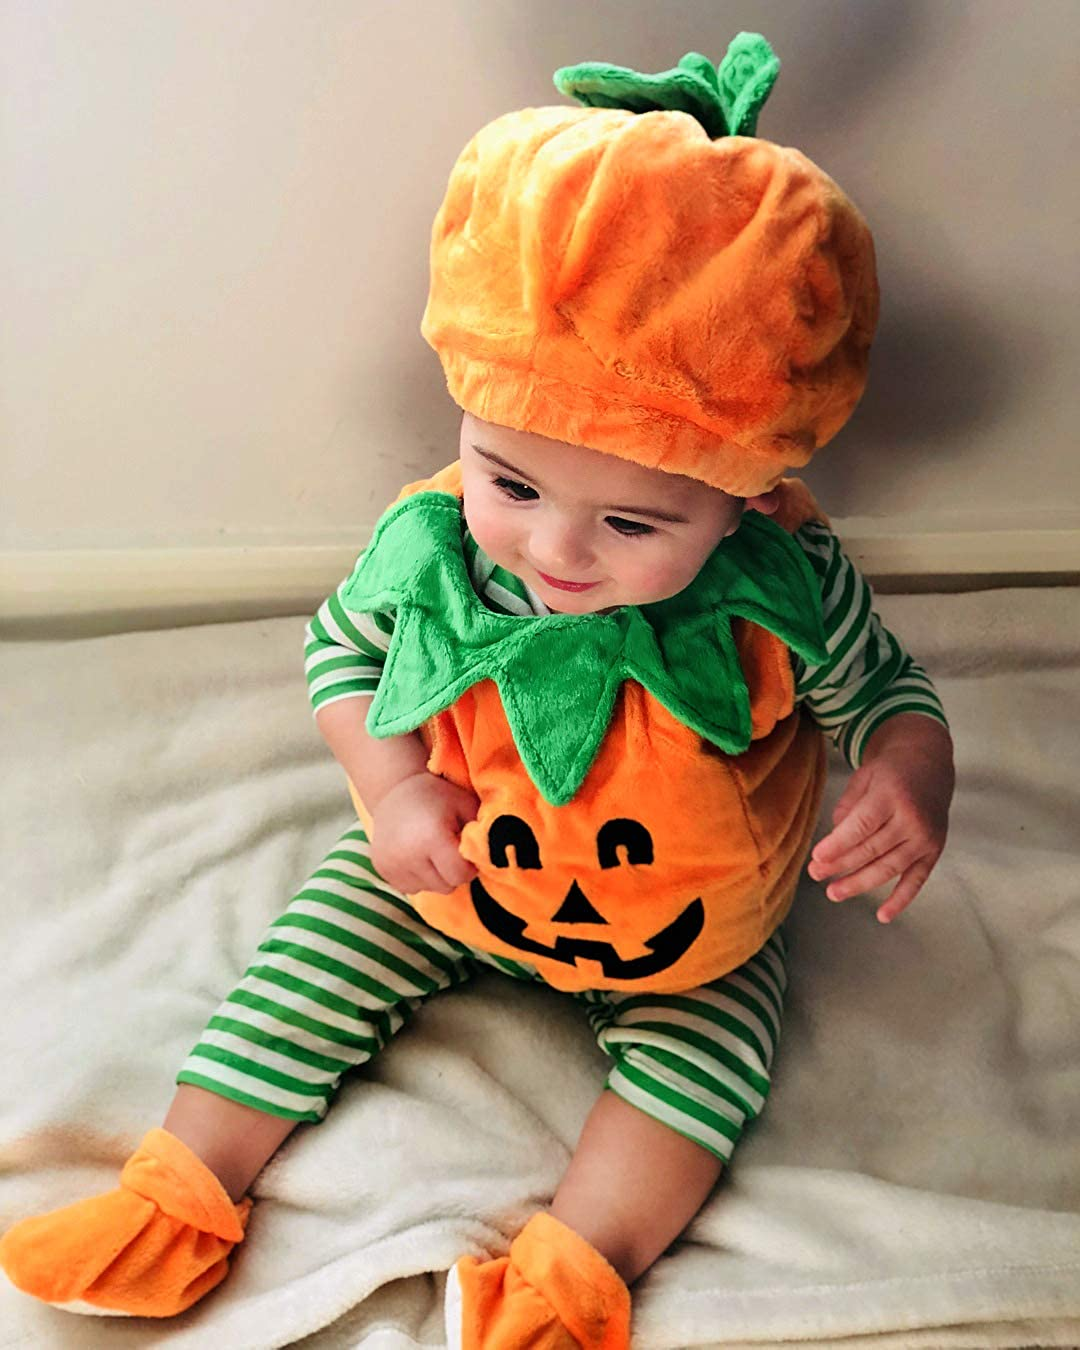 Toddler Infant Baby Boy Girl Pumpkin Halloween Costumes Romper Bodysuit Outfit with Hat 0-3T